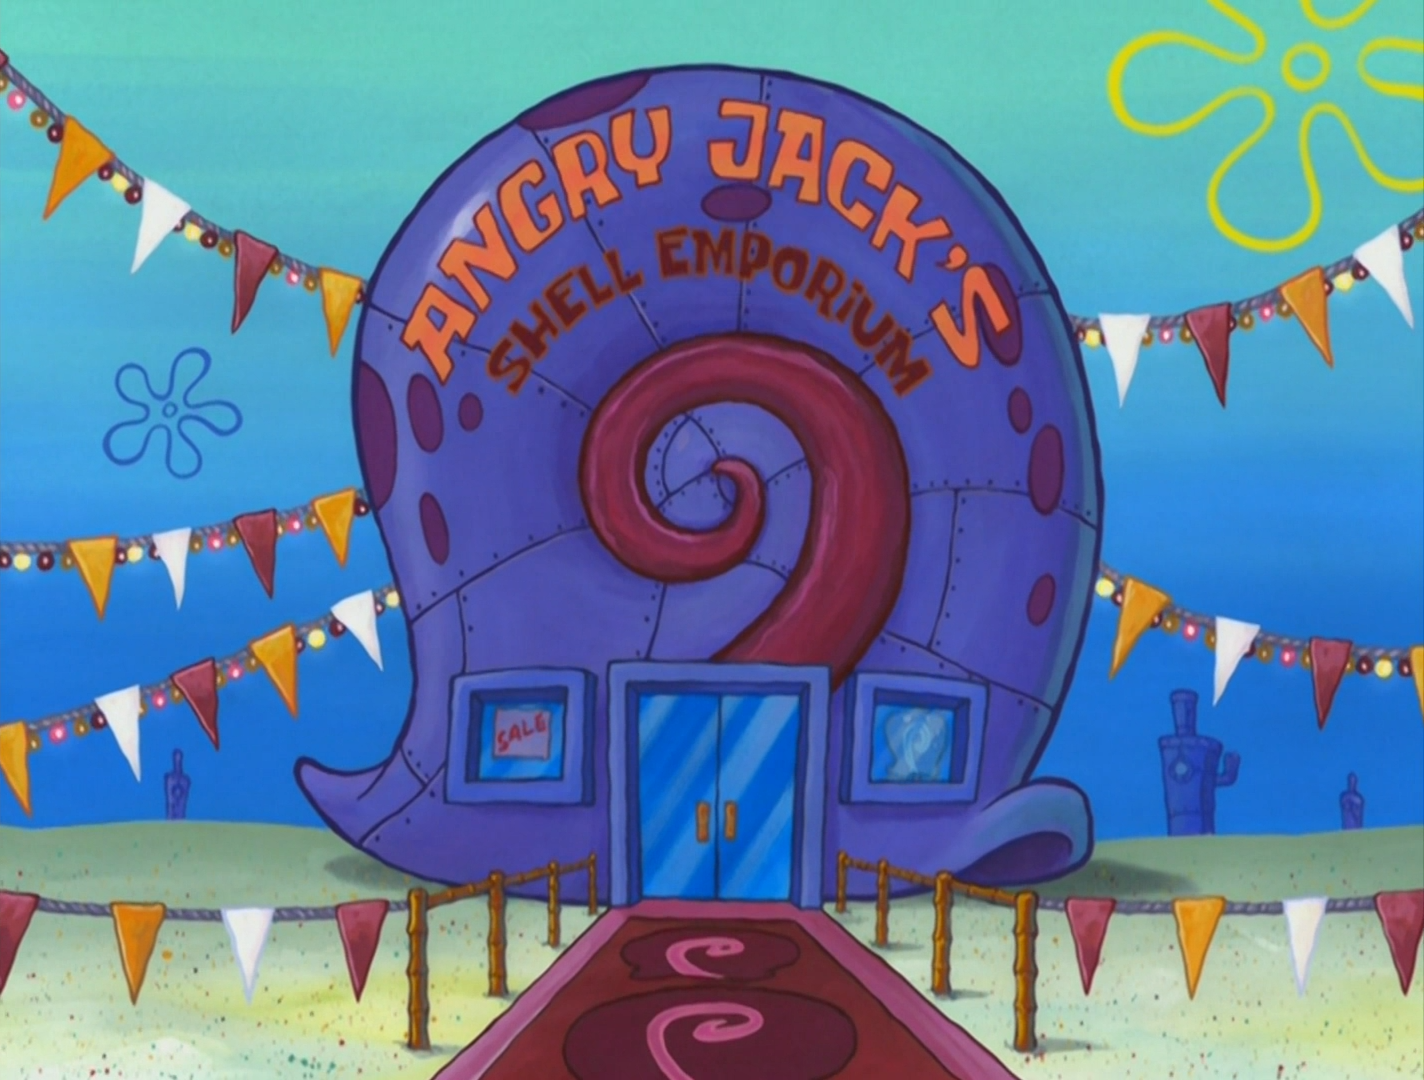 Angry Jack's Shell Emporium